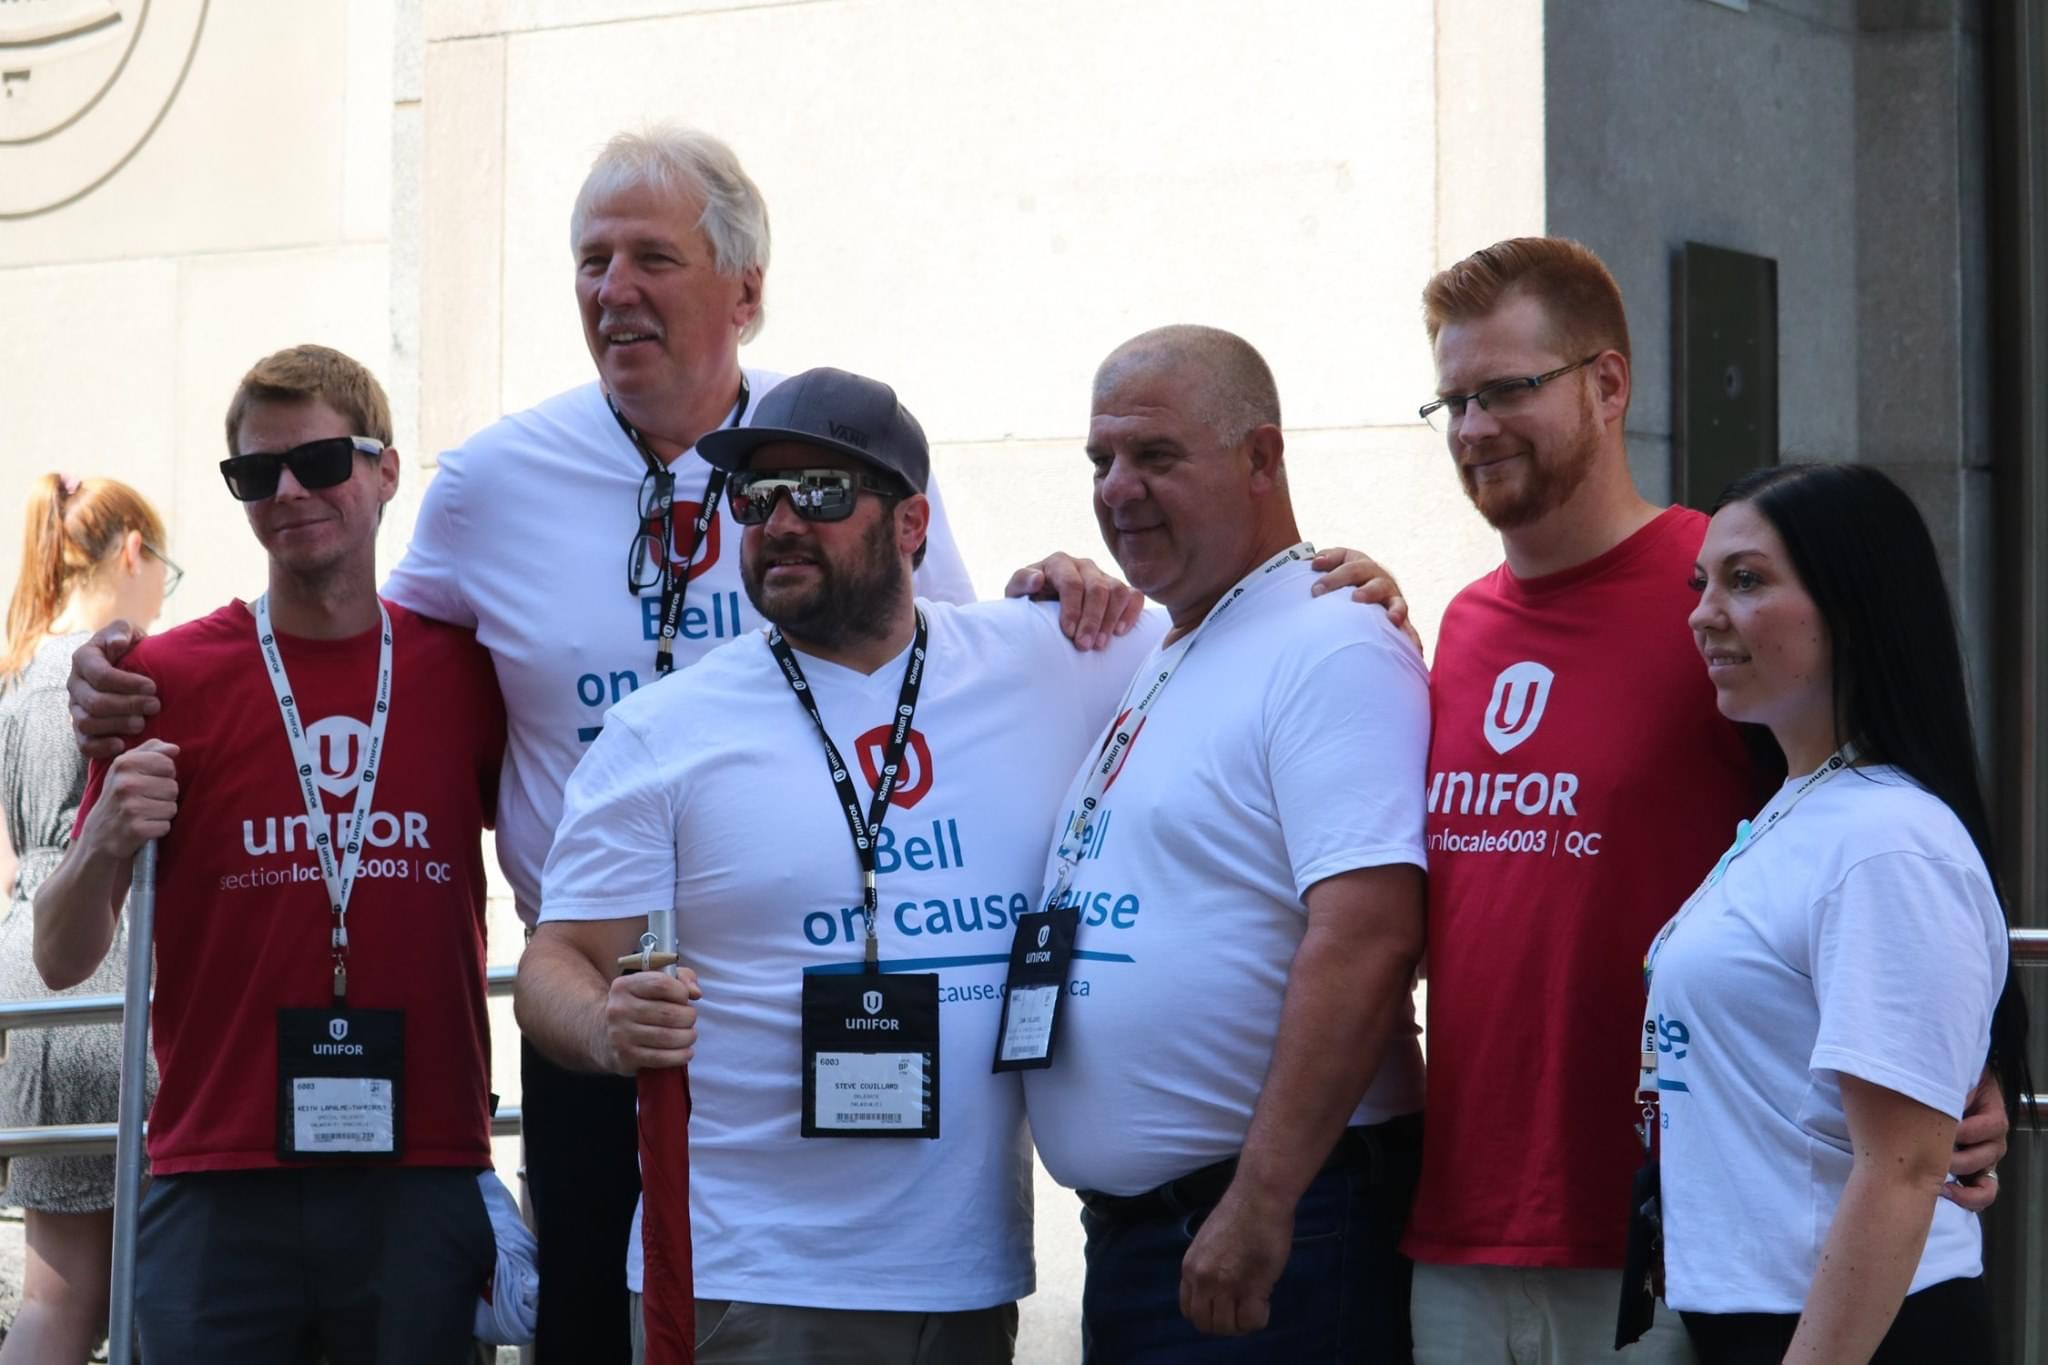 Renaud Gagne poses with 5 telco members at a rally in Quebec City.